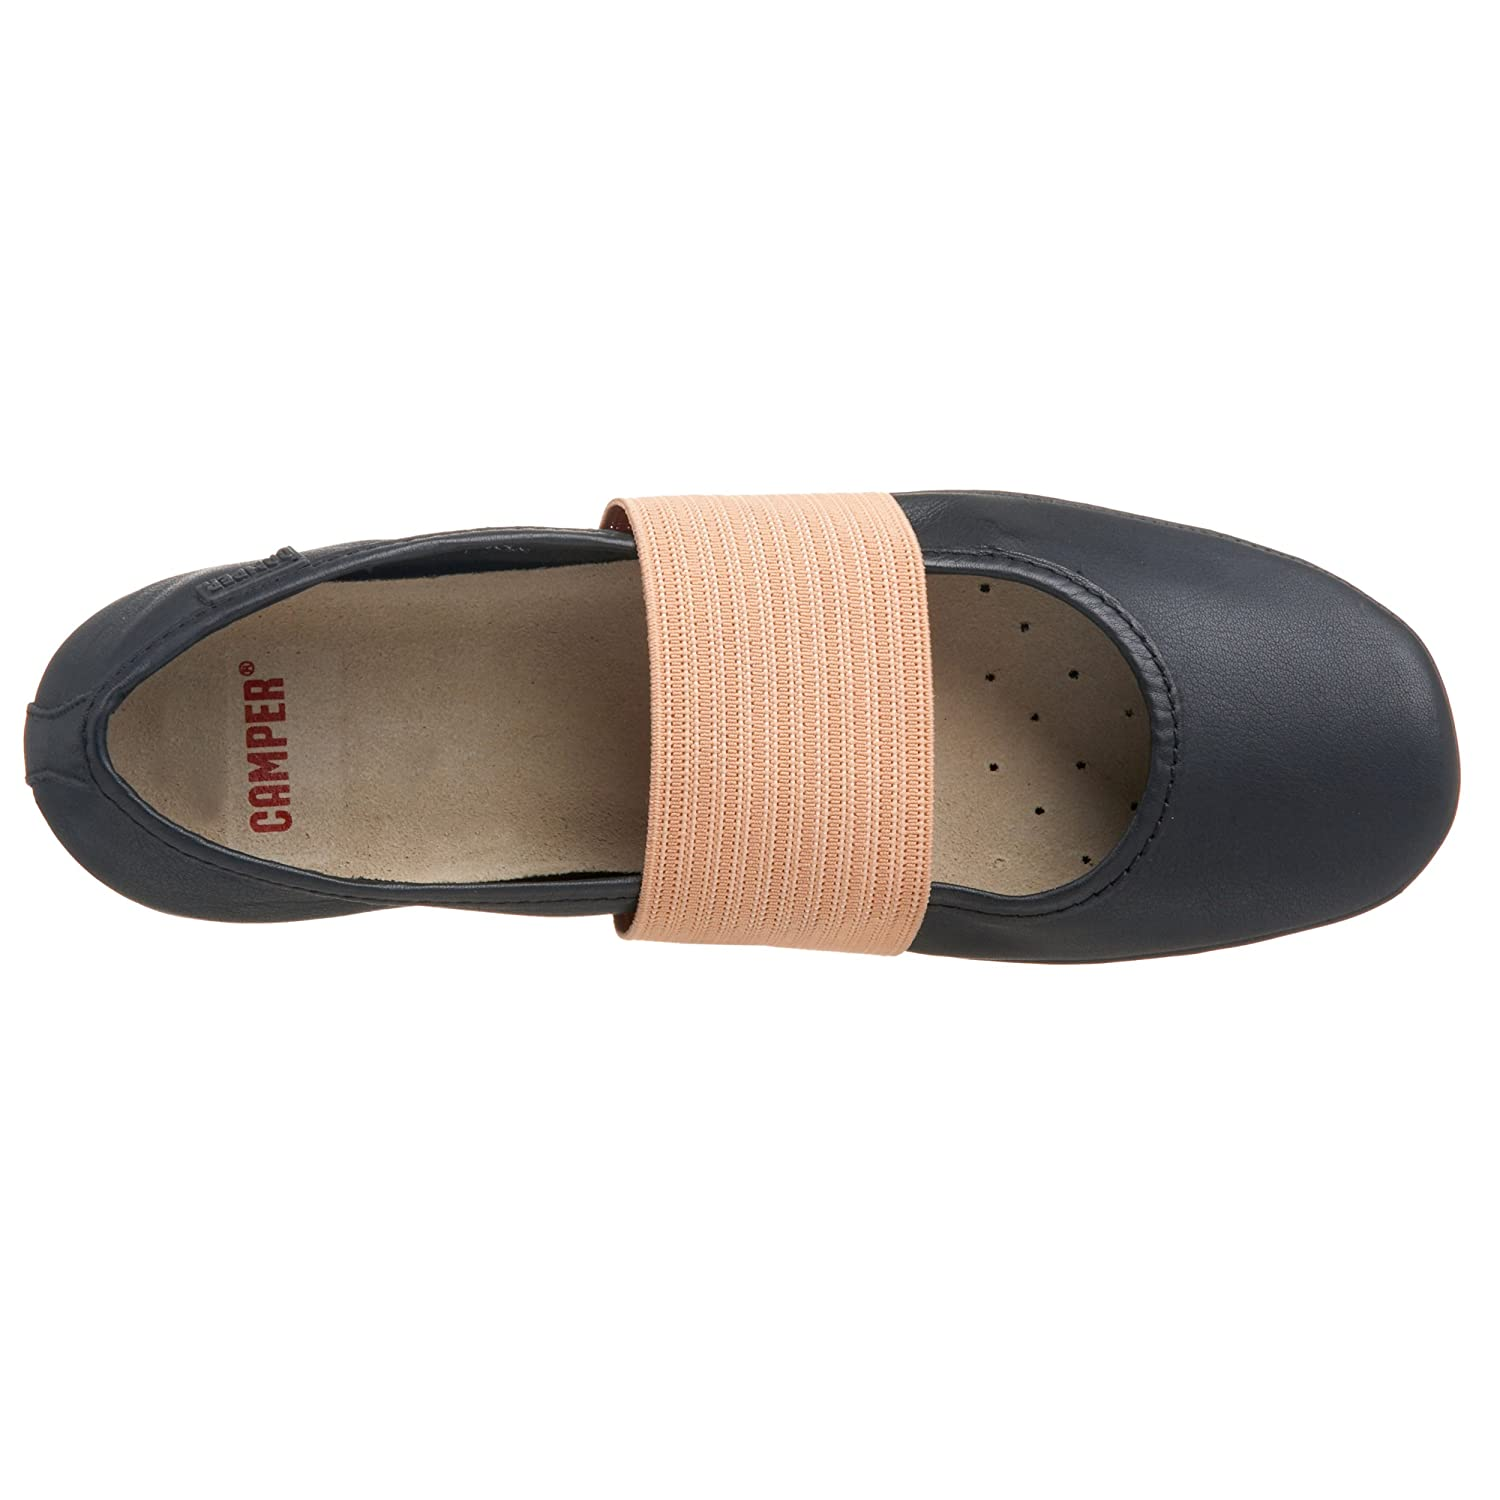 Camper Right Ballet Flat - Free Overnight Shipping & Return Shipping: Endless.com from endless.com